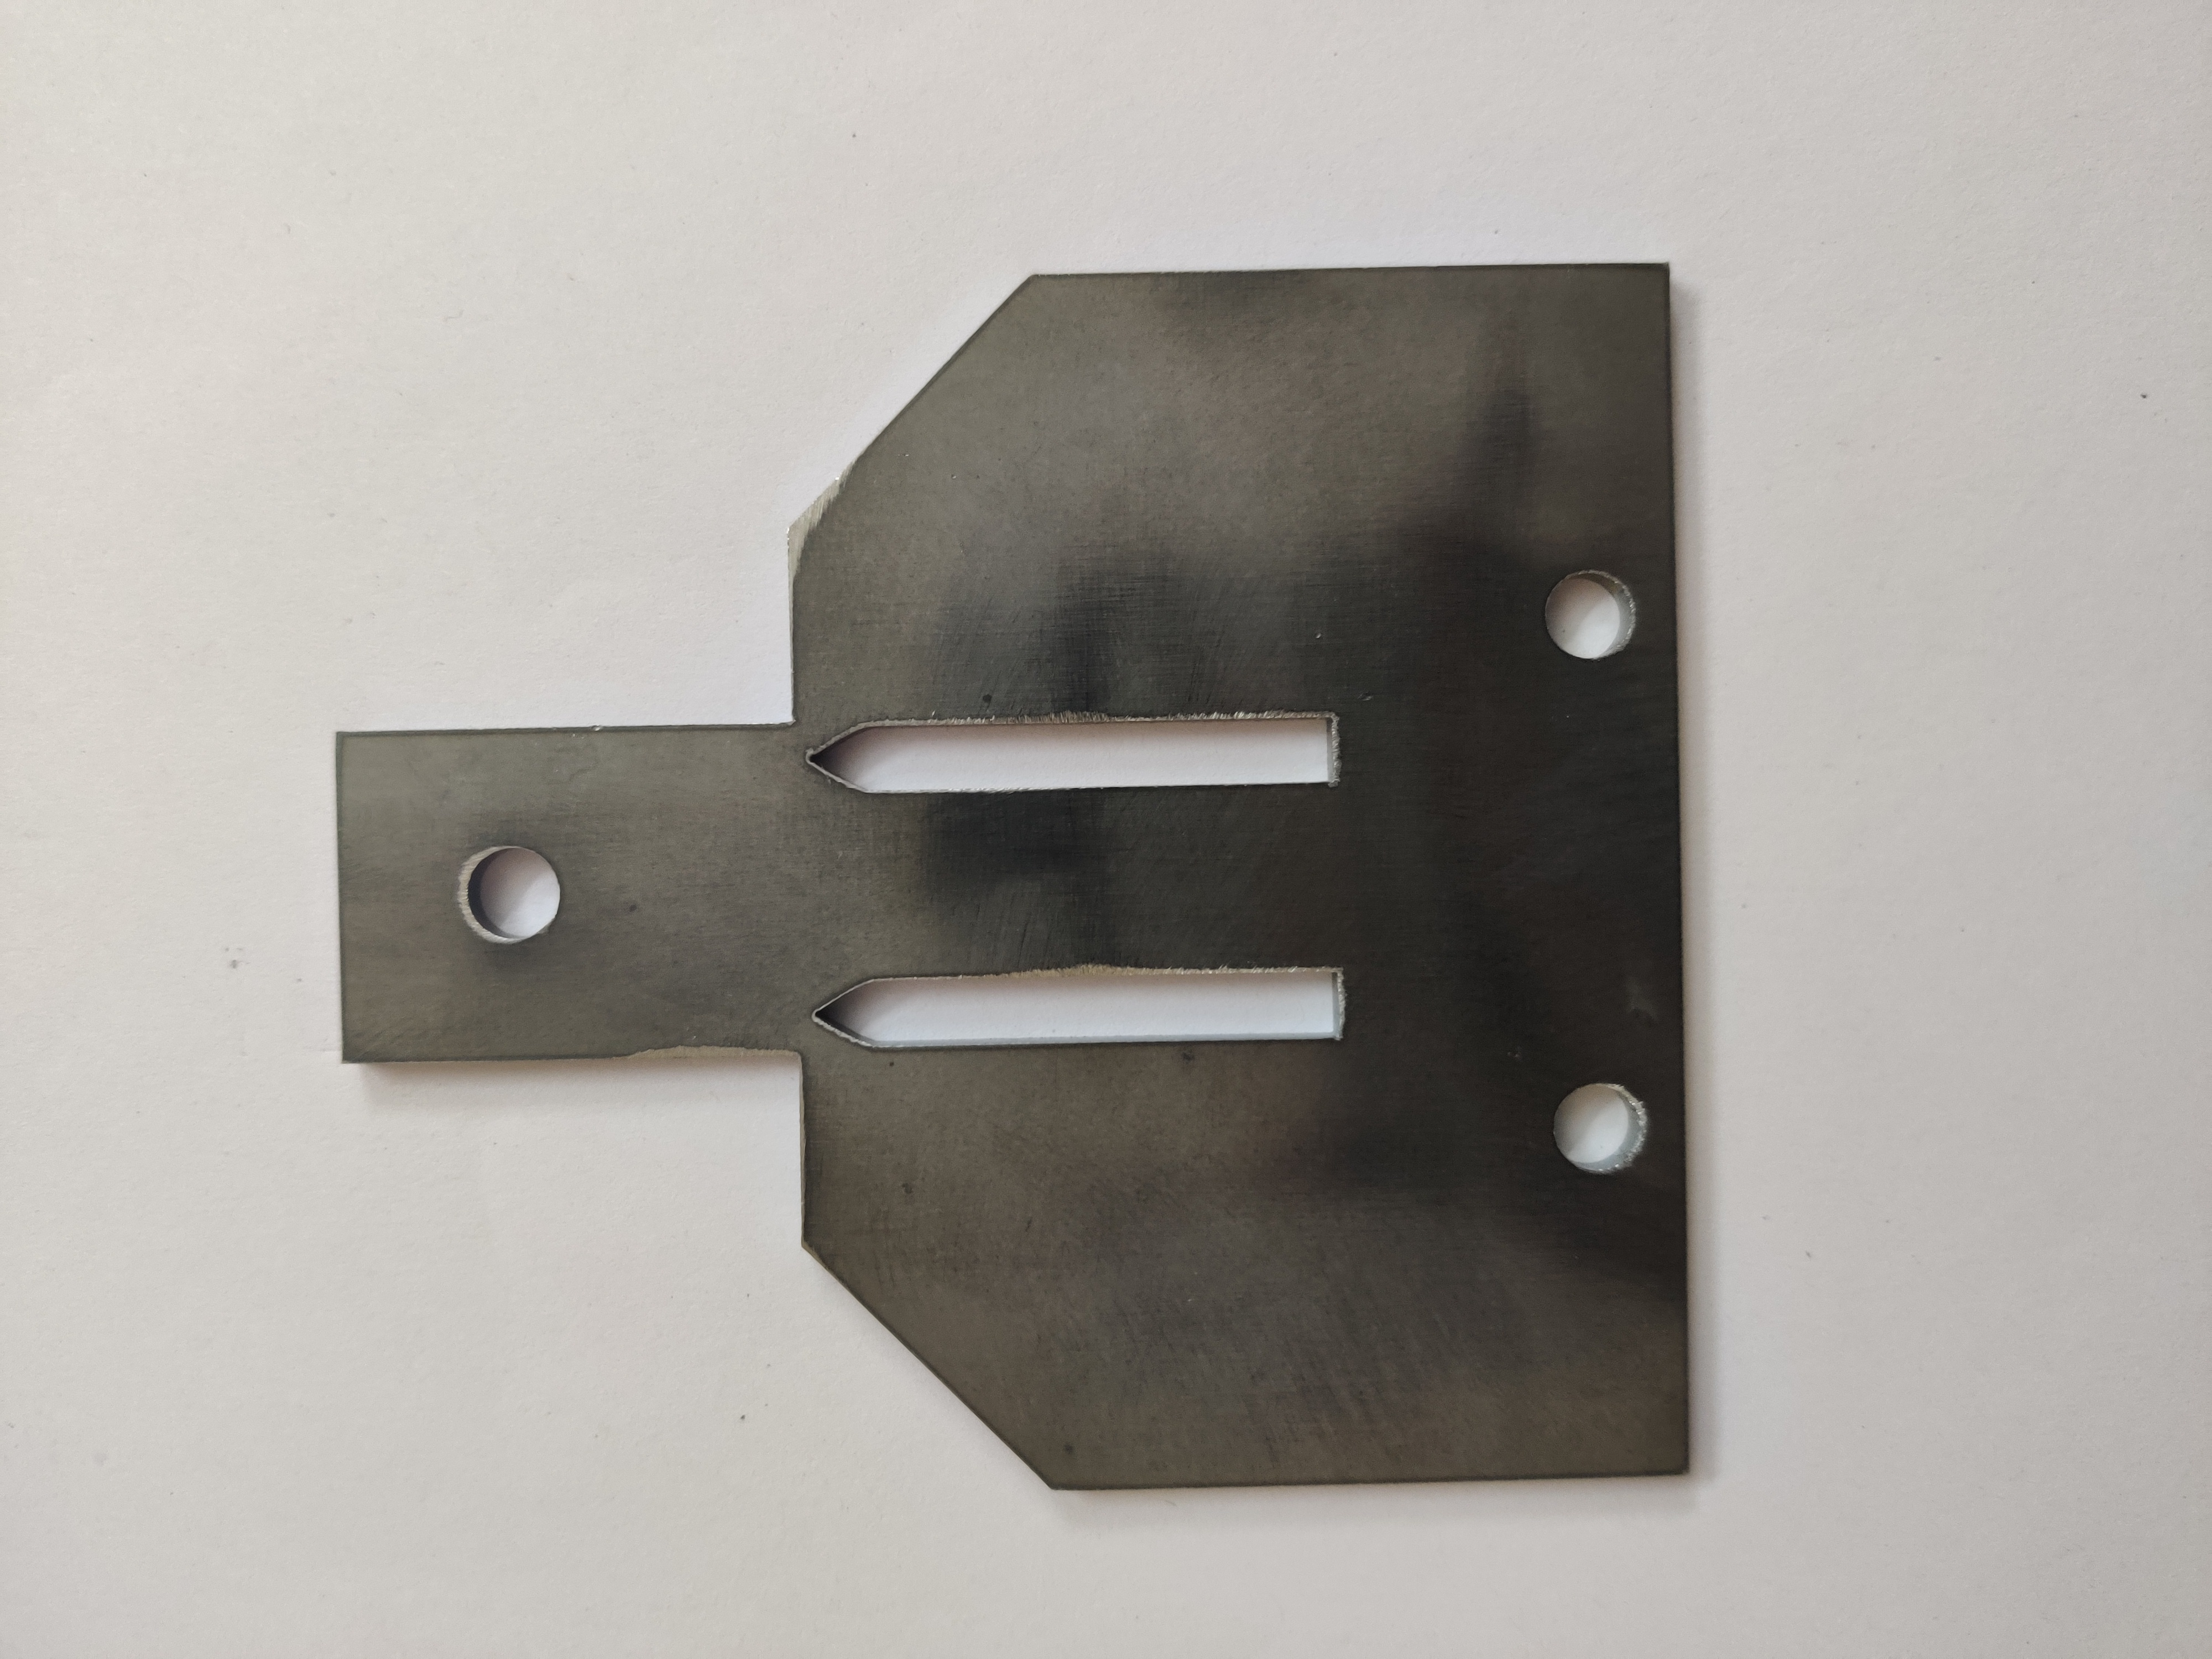 Laser Metal Cutting and CNC bENDING, and welding services